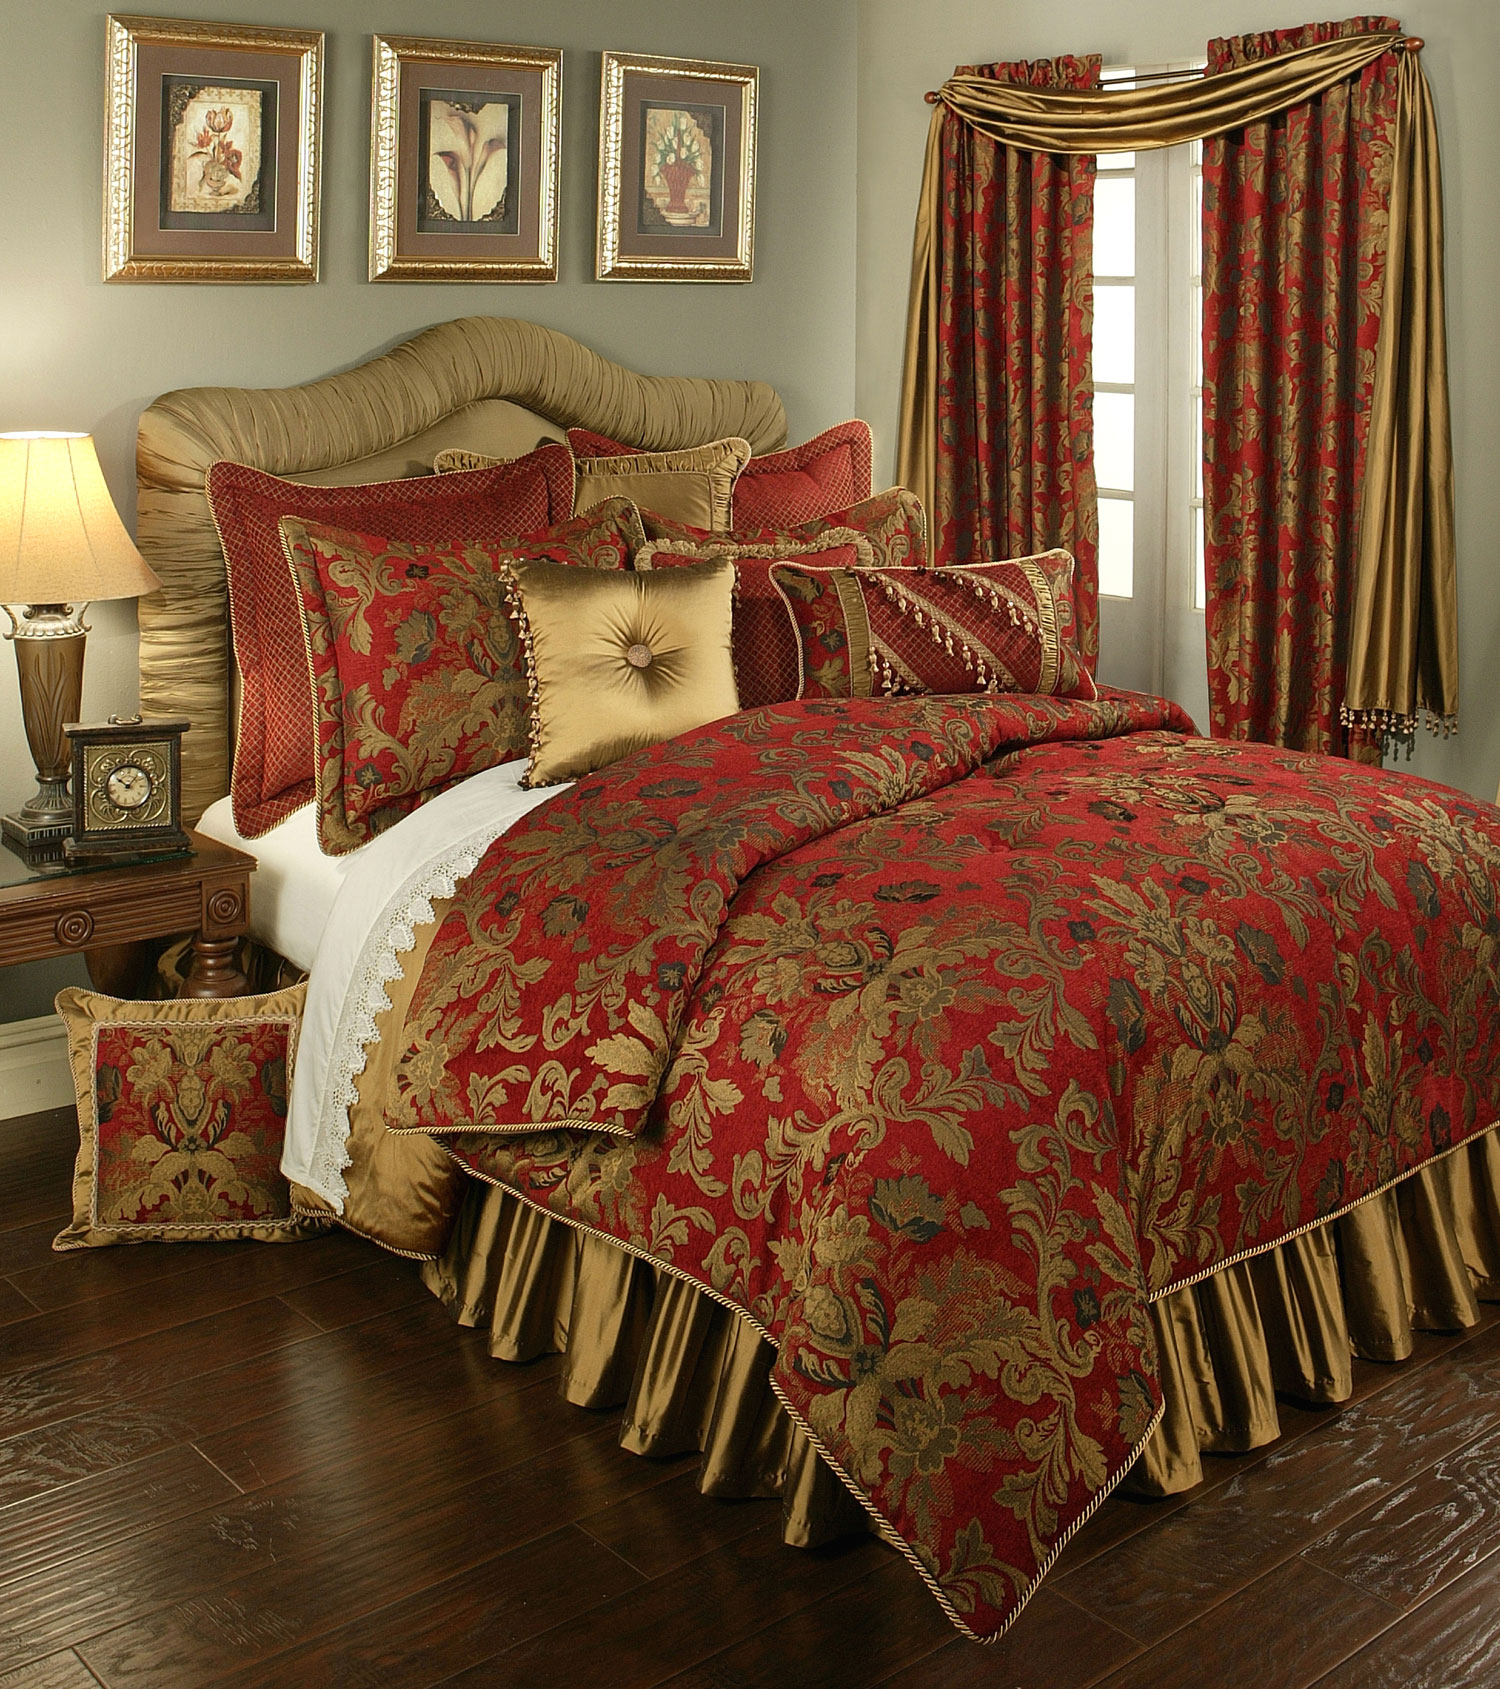 Verona Red By Austin Horn Luxury Bedding Beddingsuperstore Com # Muebles Seys Verona